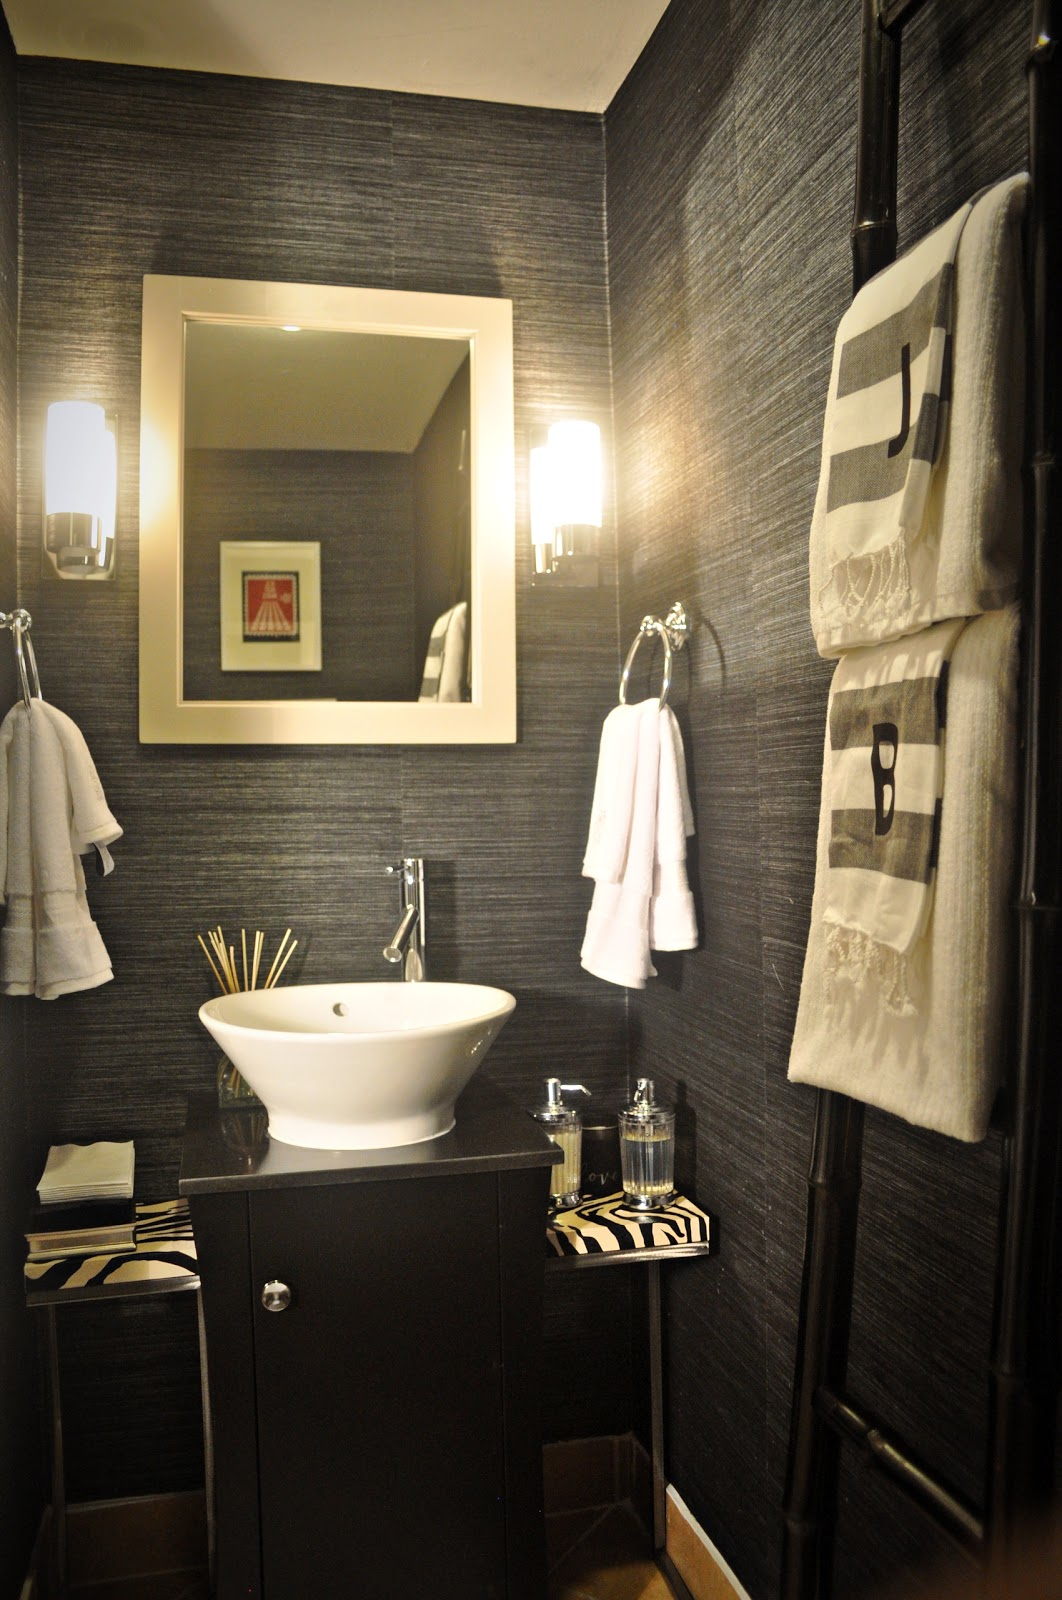 Live Laugh Decorate: Powder Room - From Inspiration to Reality